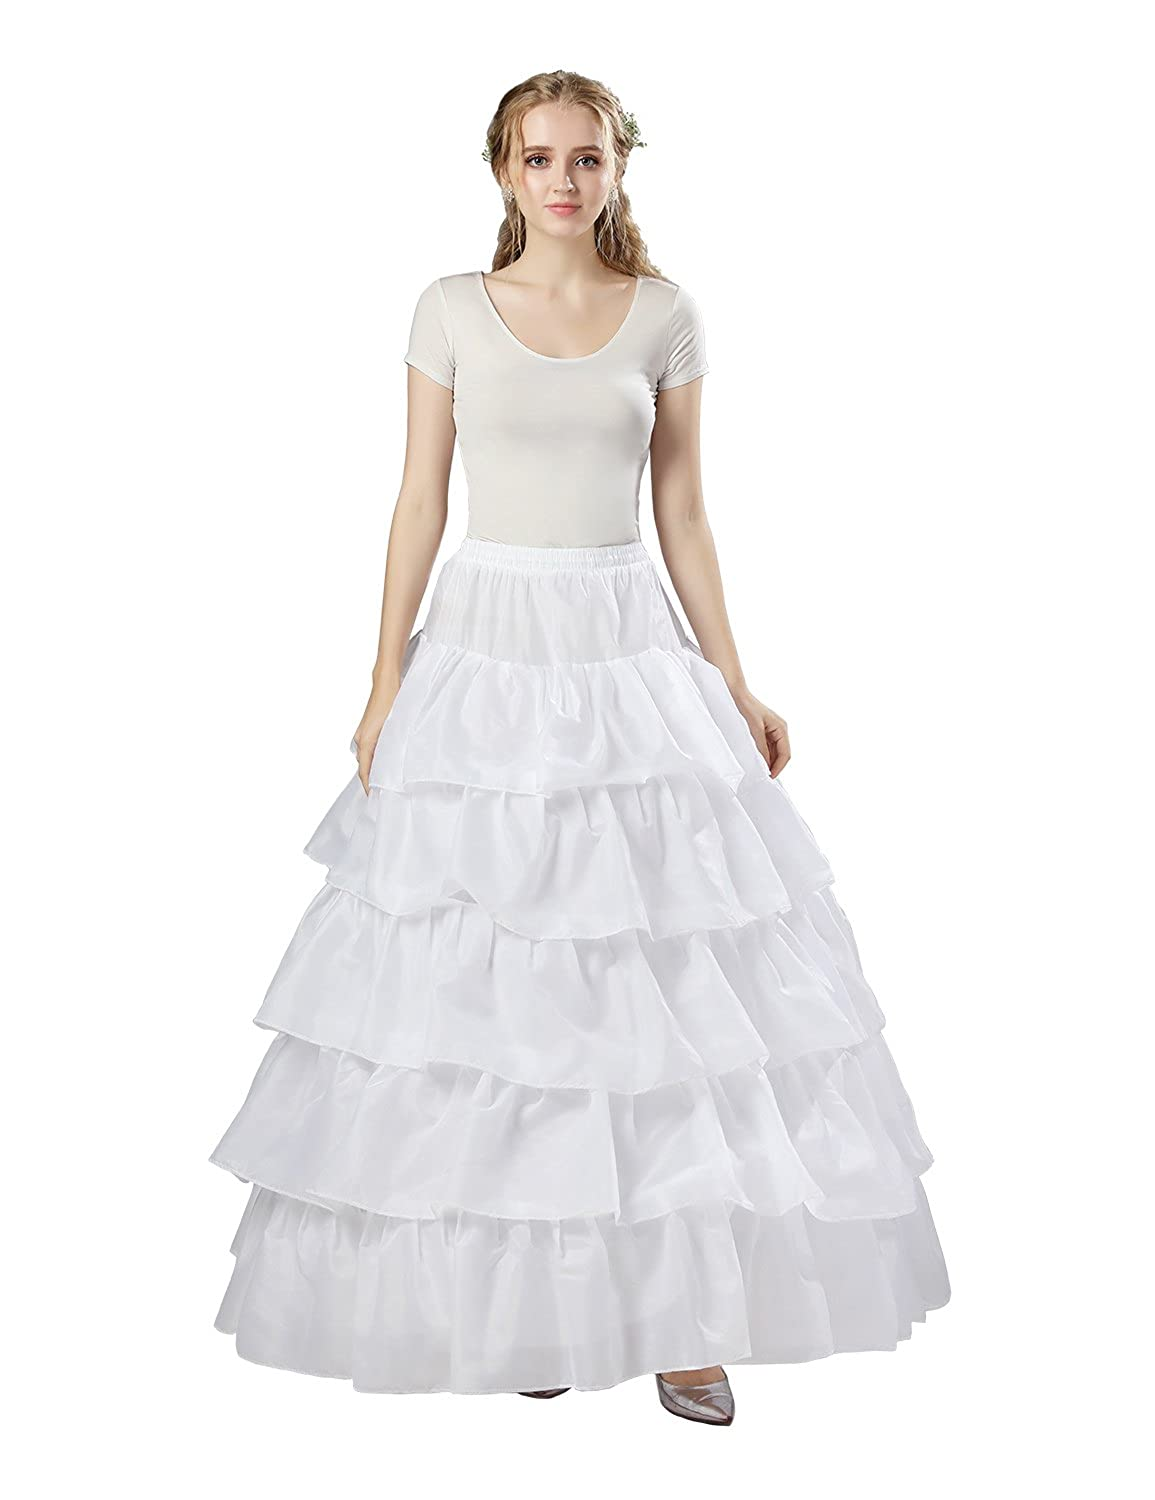 Sarahbridal Women's Bridal Petticoat Wedding Dress Crinoline Slips Underskirts for Prom Evening Gowns White S12001 S12002WT